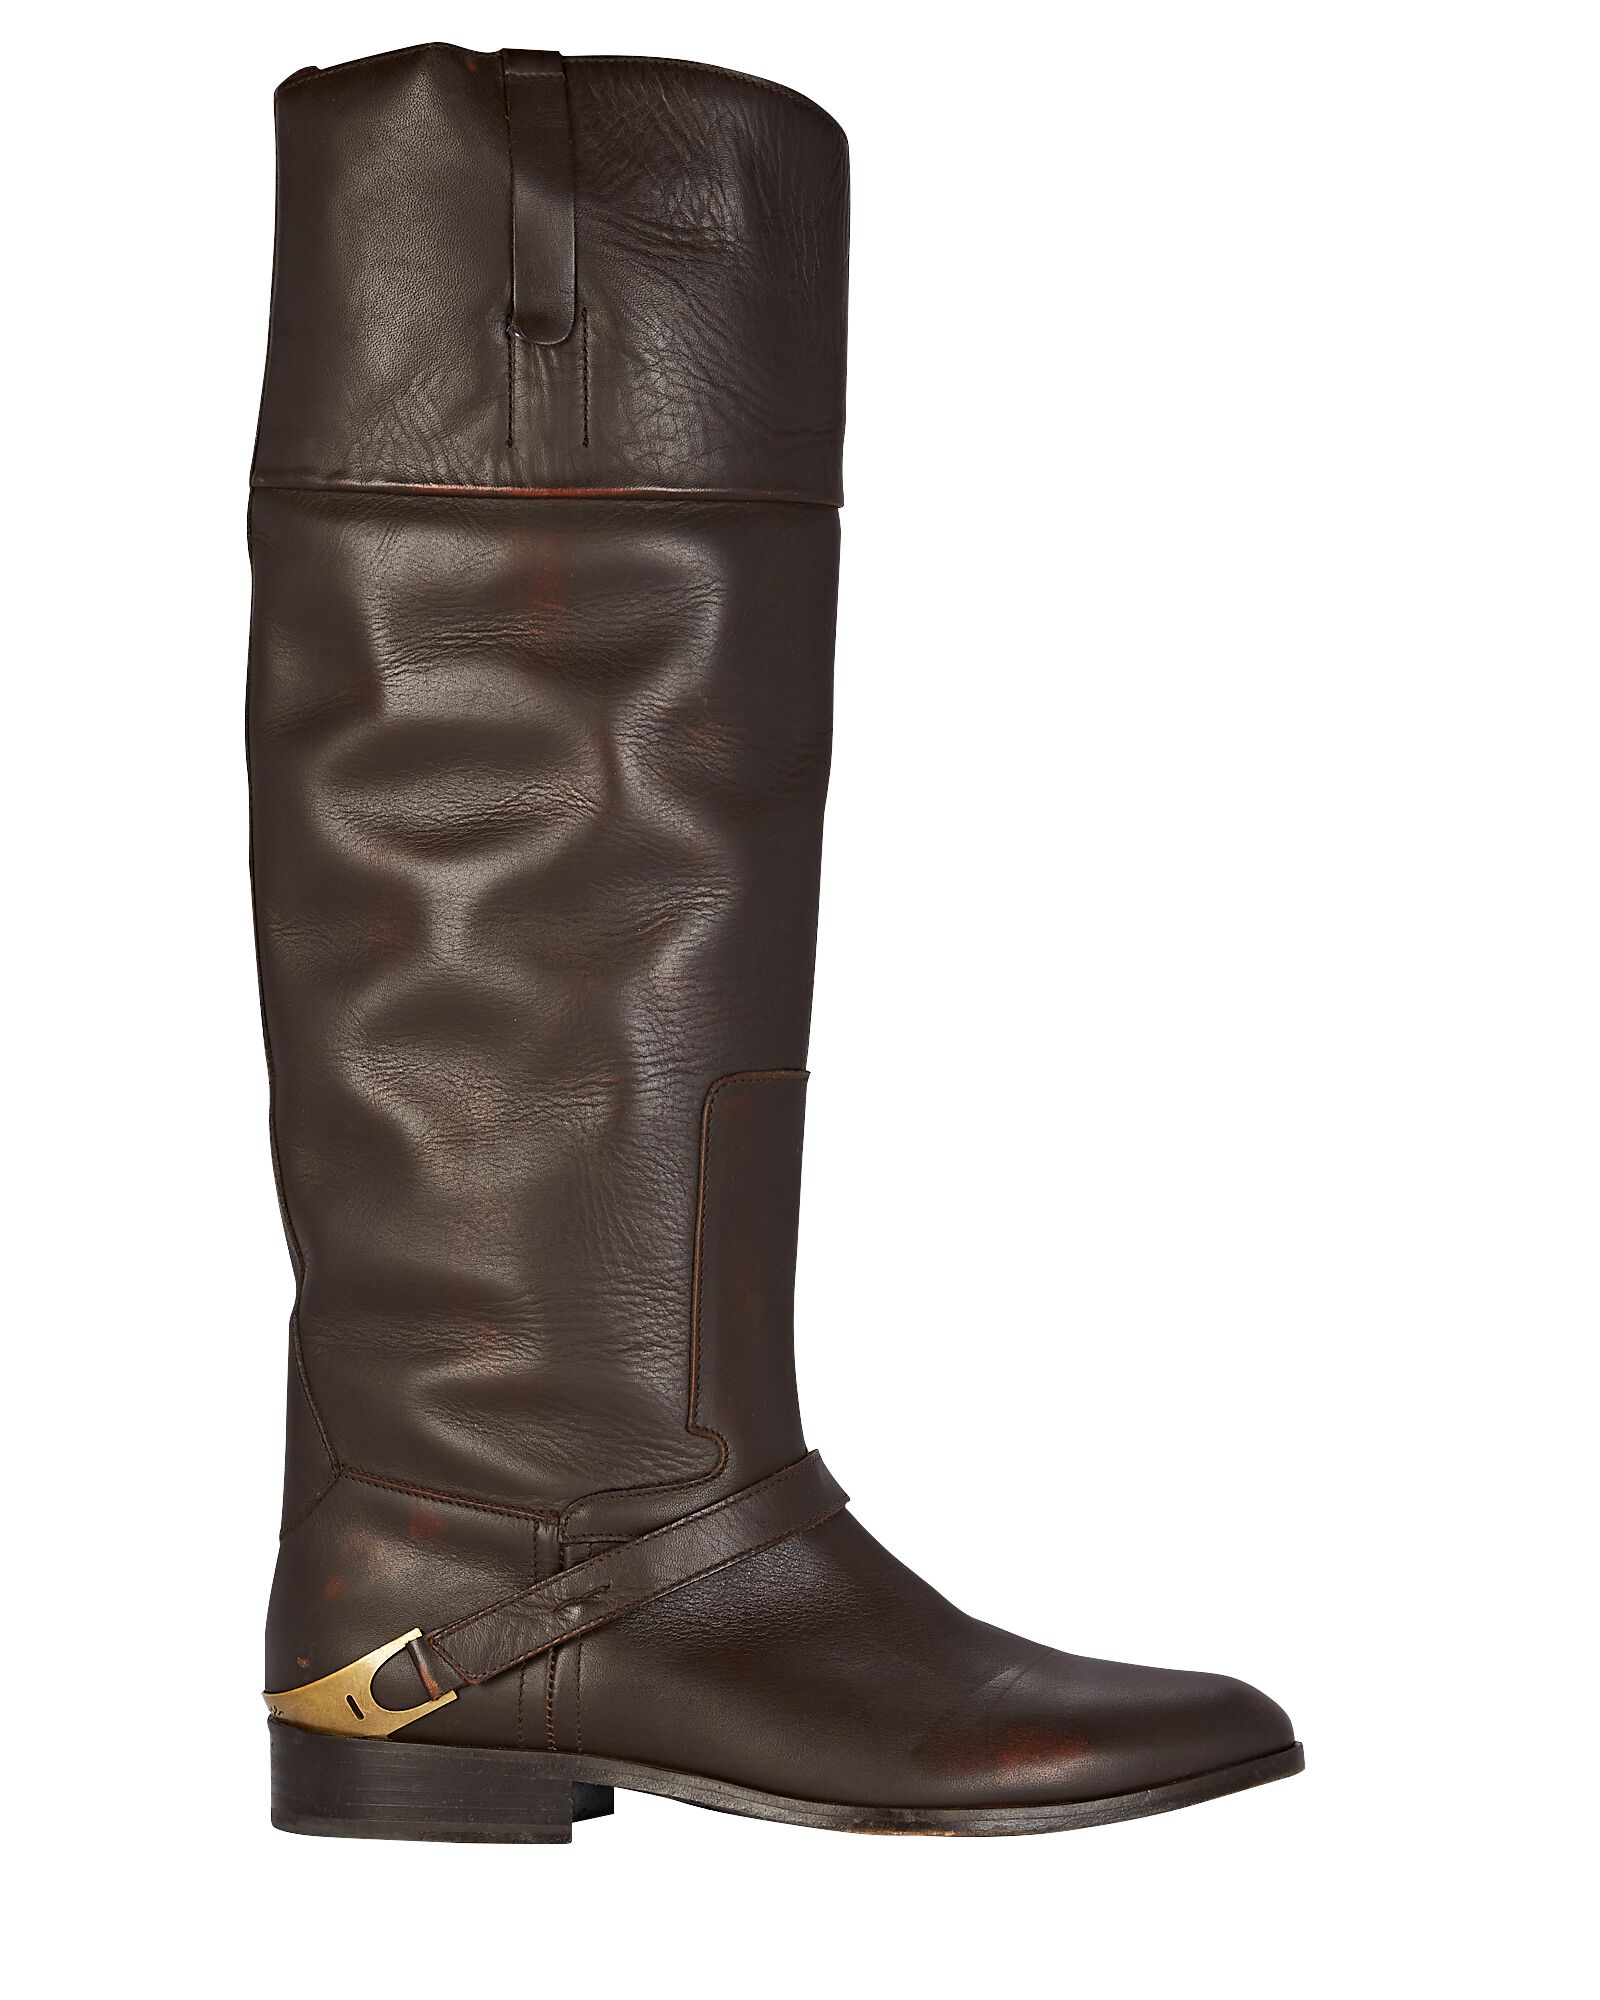 Charlie Knee-High Leather Boots, BROWN, hi-res